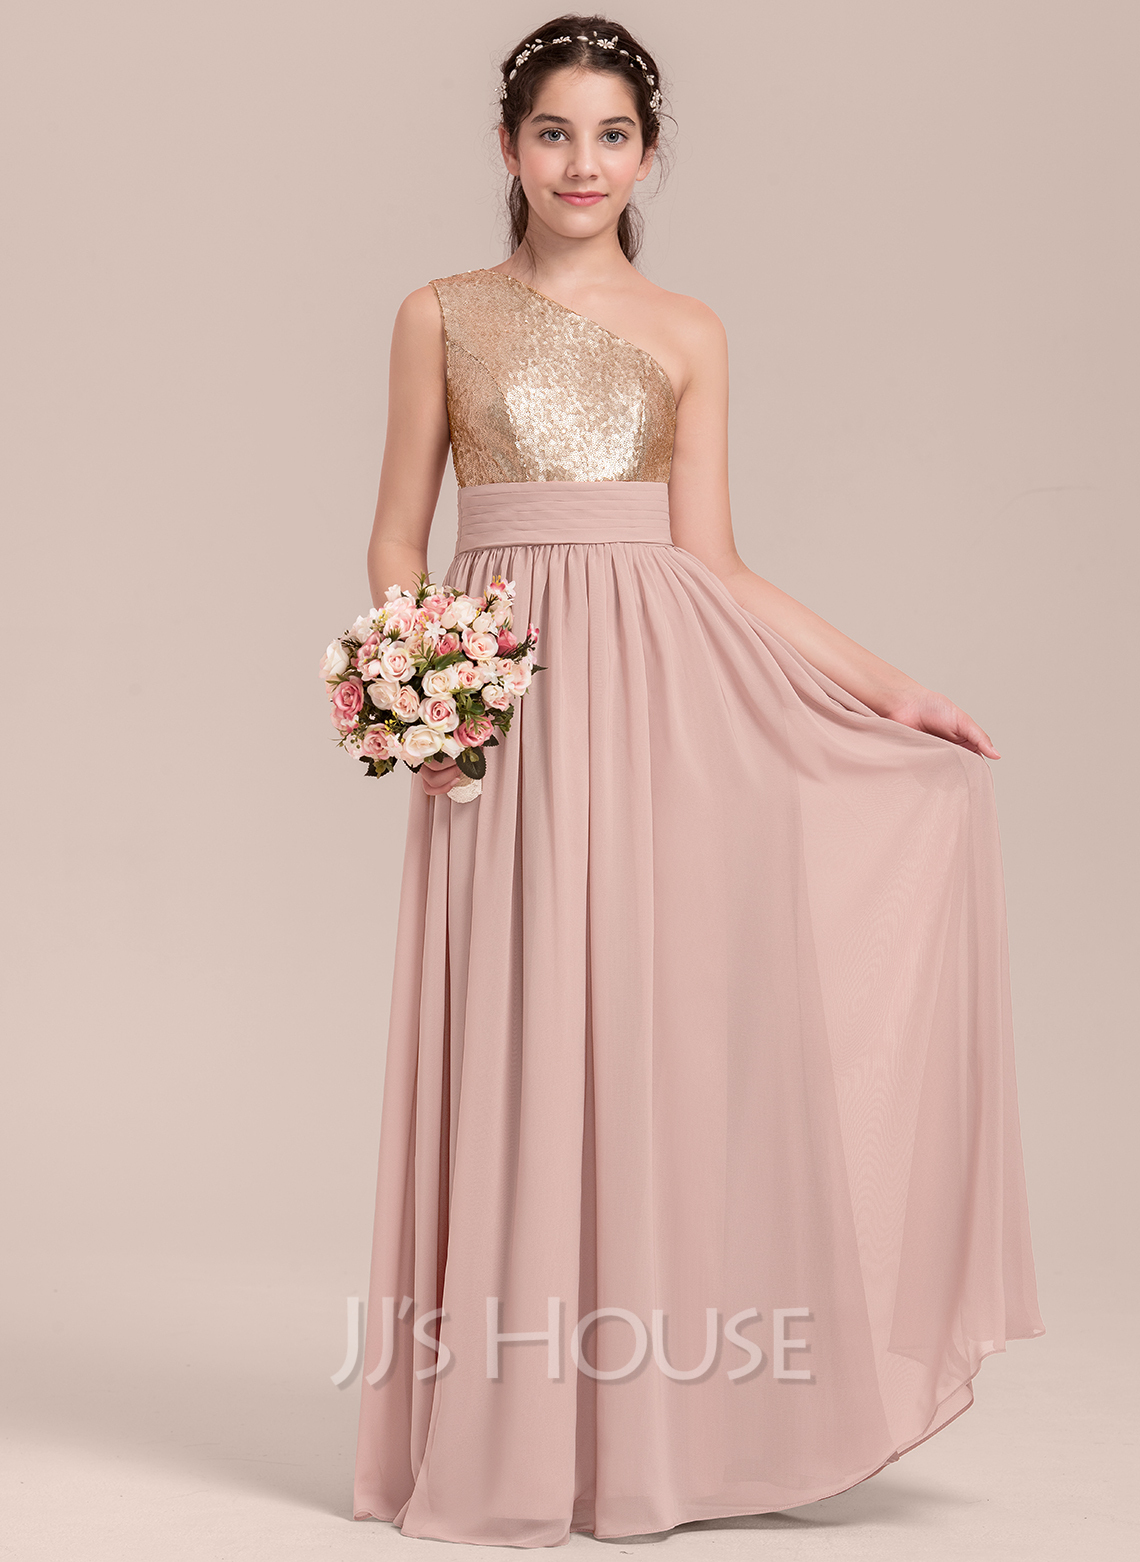 A-Line/Princess Floor-length Flower Girl Dress - Chiffon/Sequined Sleeveless One-Shoulder